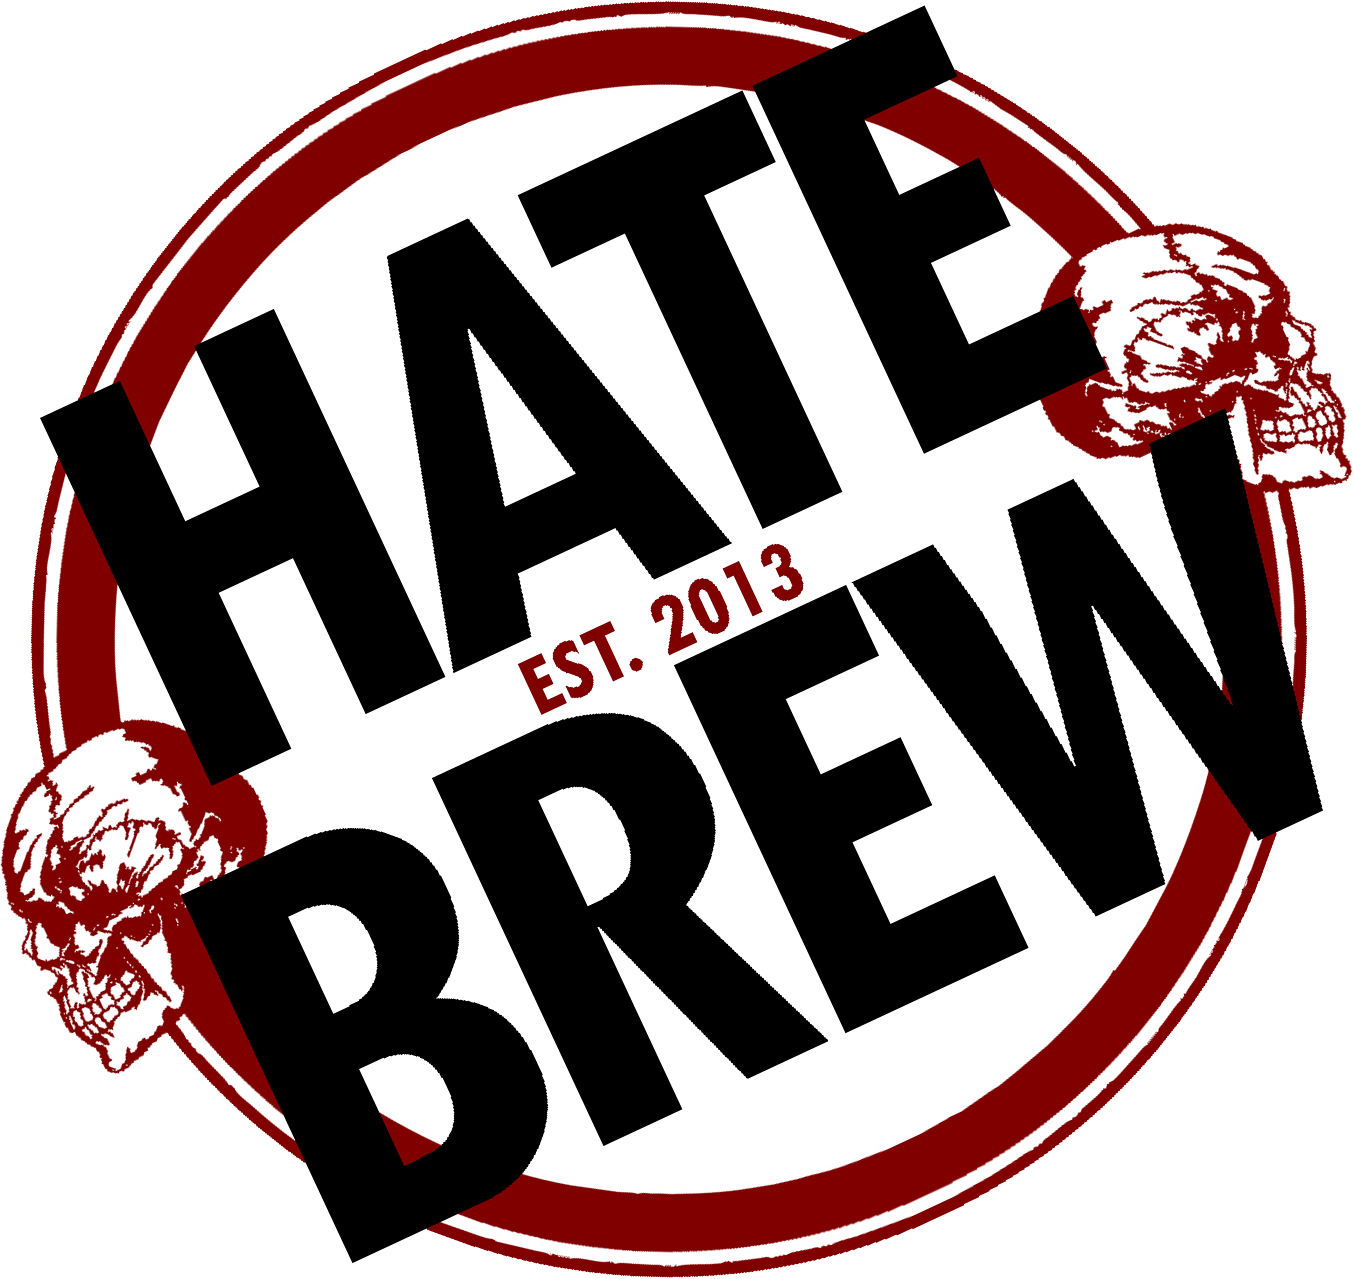 https://www.facebook.com/hatebrew